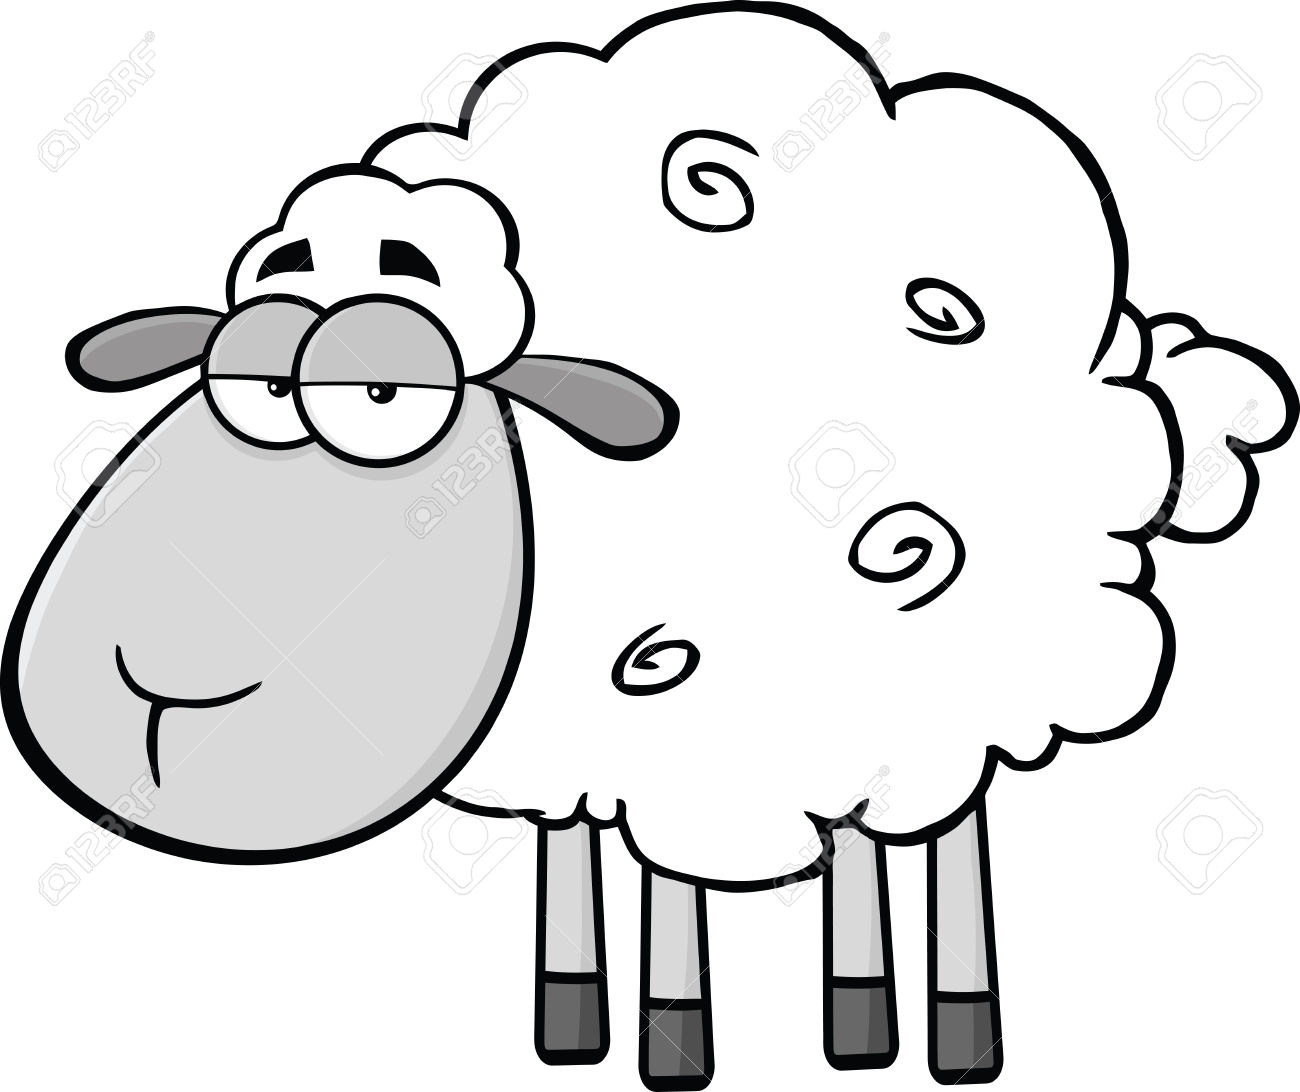 Sheep Cartoon Drawing